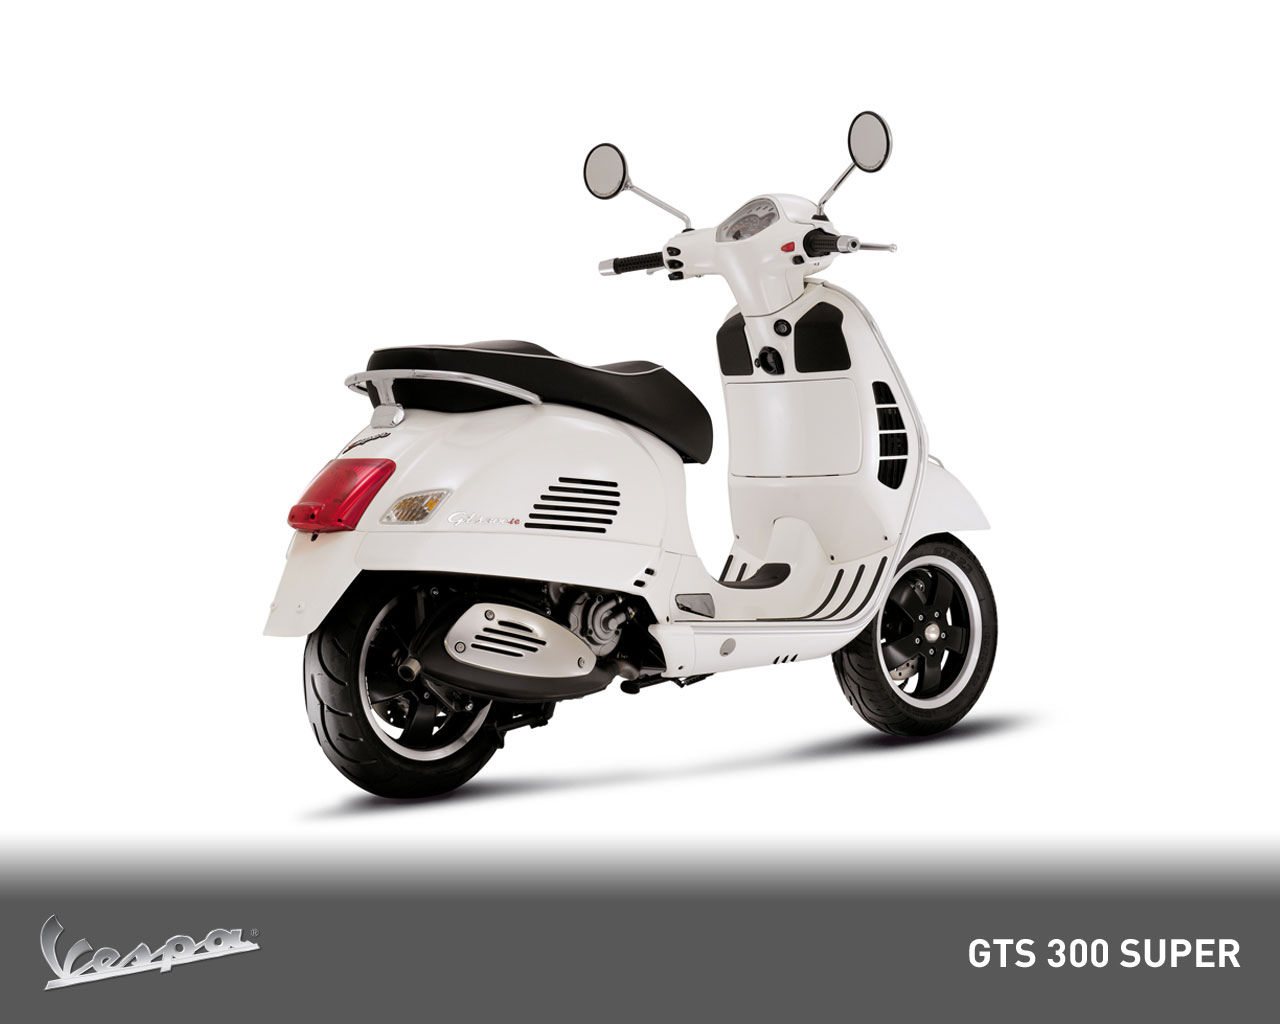 vespa gts 300 super specs 2009 2010 autoevolution. Black Bedroom Furniture Sets. Home Design Ideas